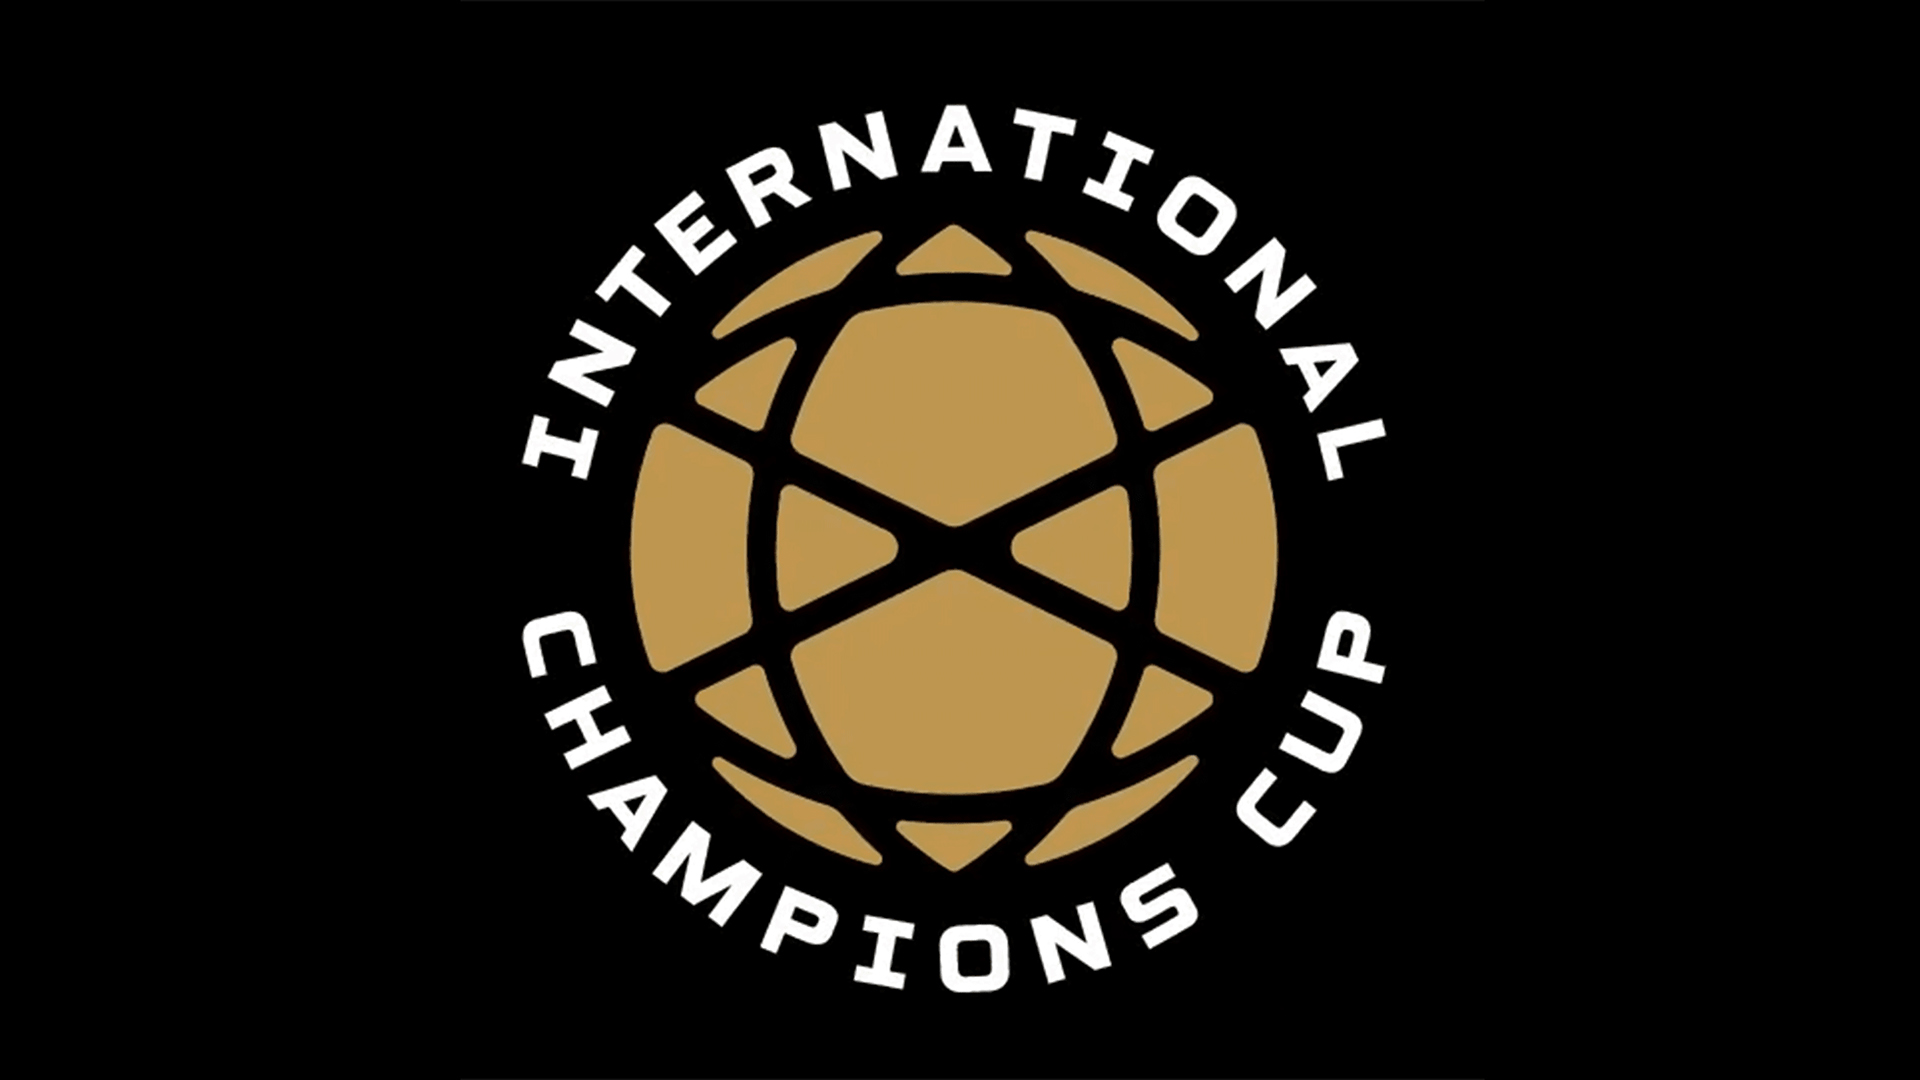 Calendario Partite Champions.International Champions Cup 2019 Calendario Risultati